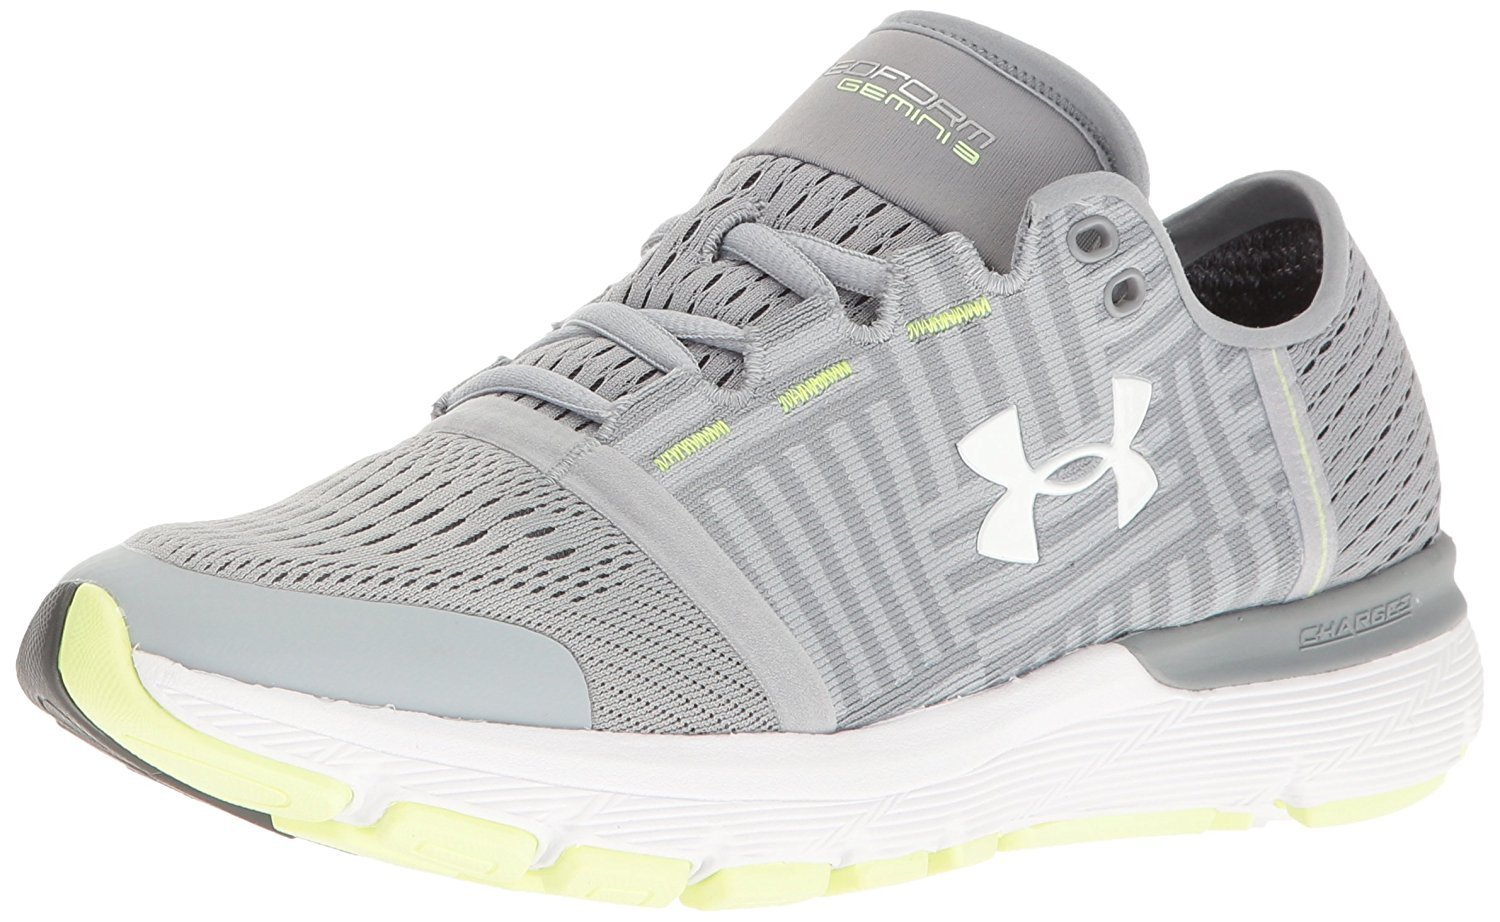 Under Armour Women's Speedform Gemini 3 Running Shoe B01GP2ZXGW 5 B(M) US|Overcast Gray/Steel/White